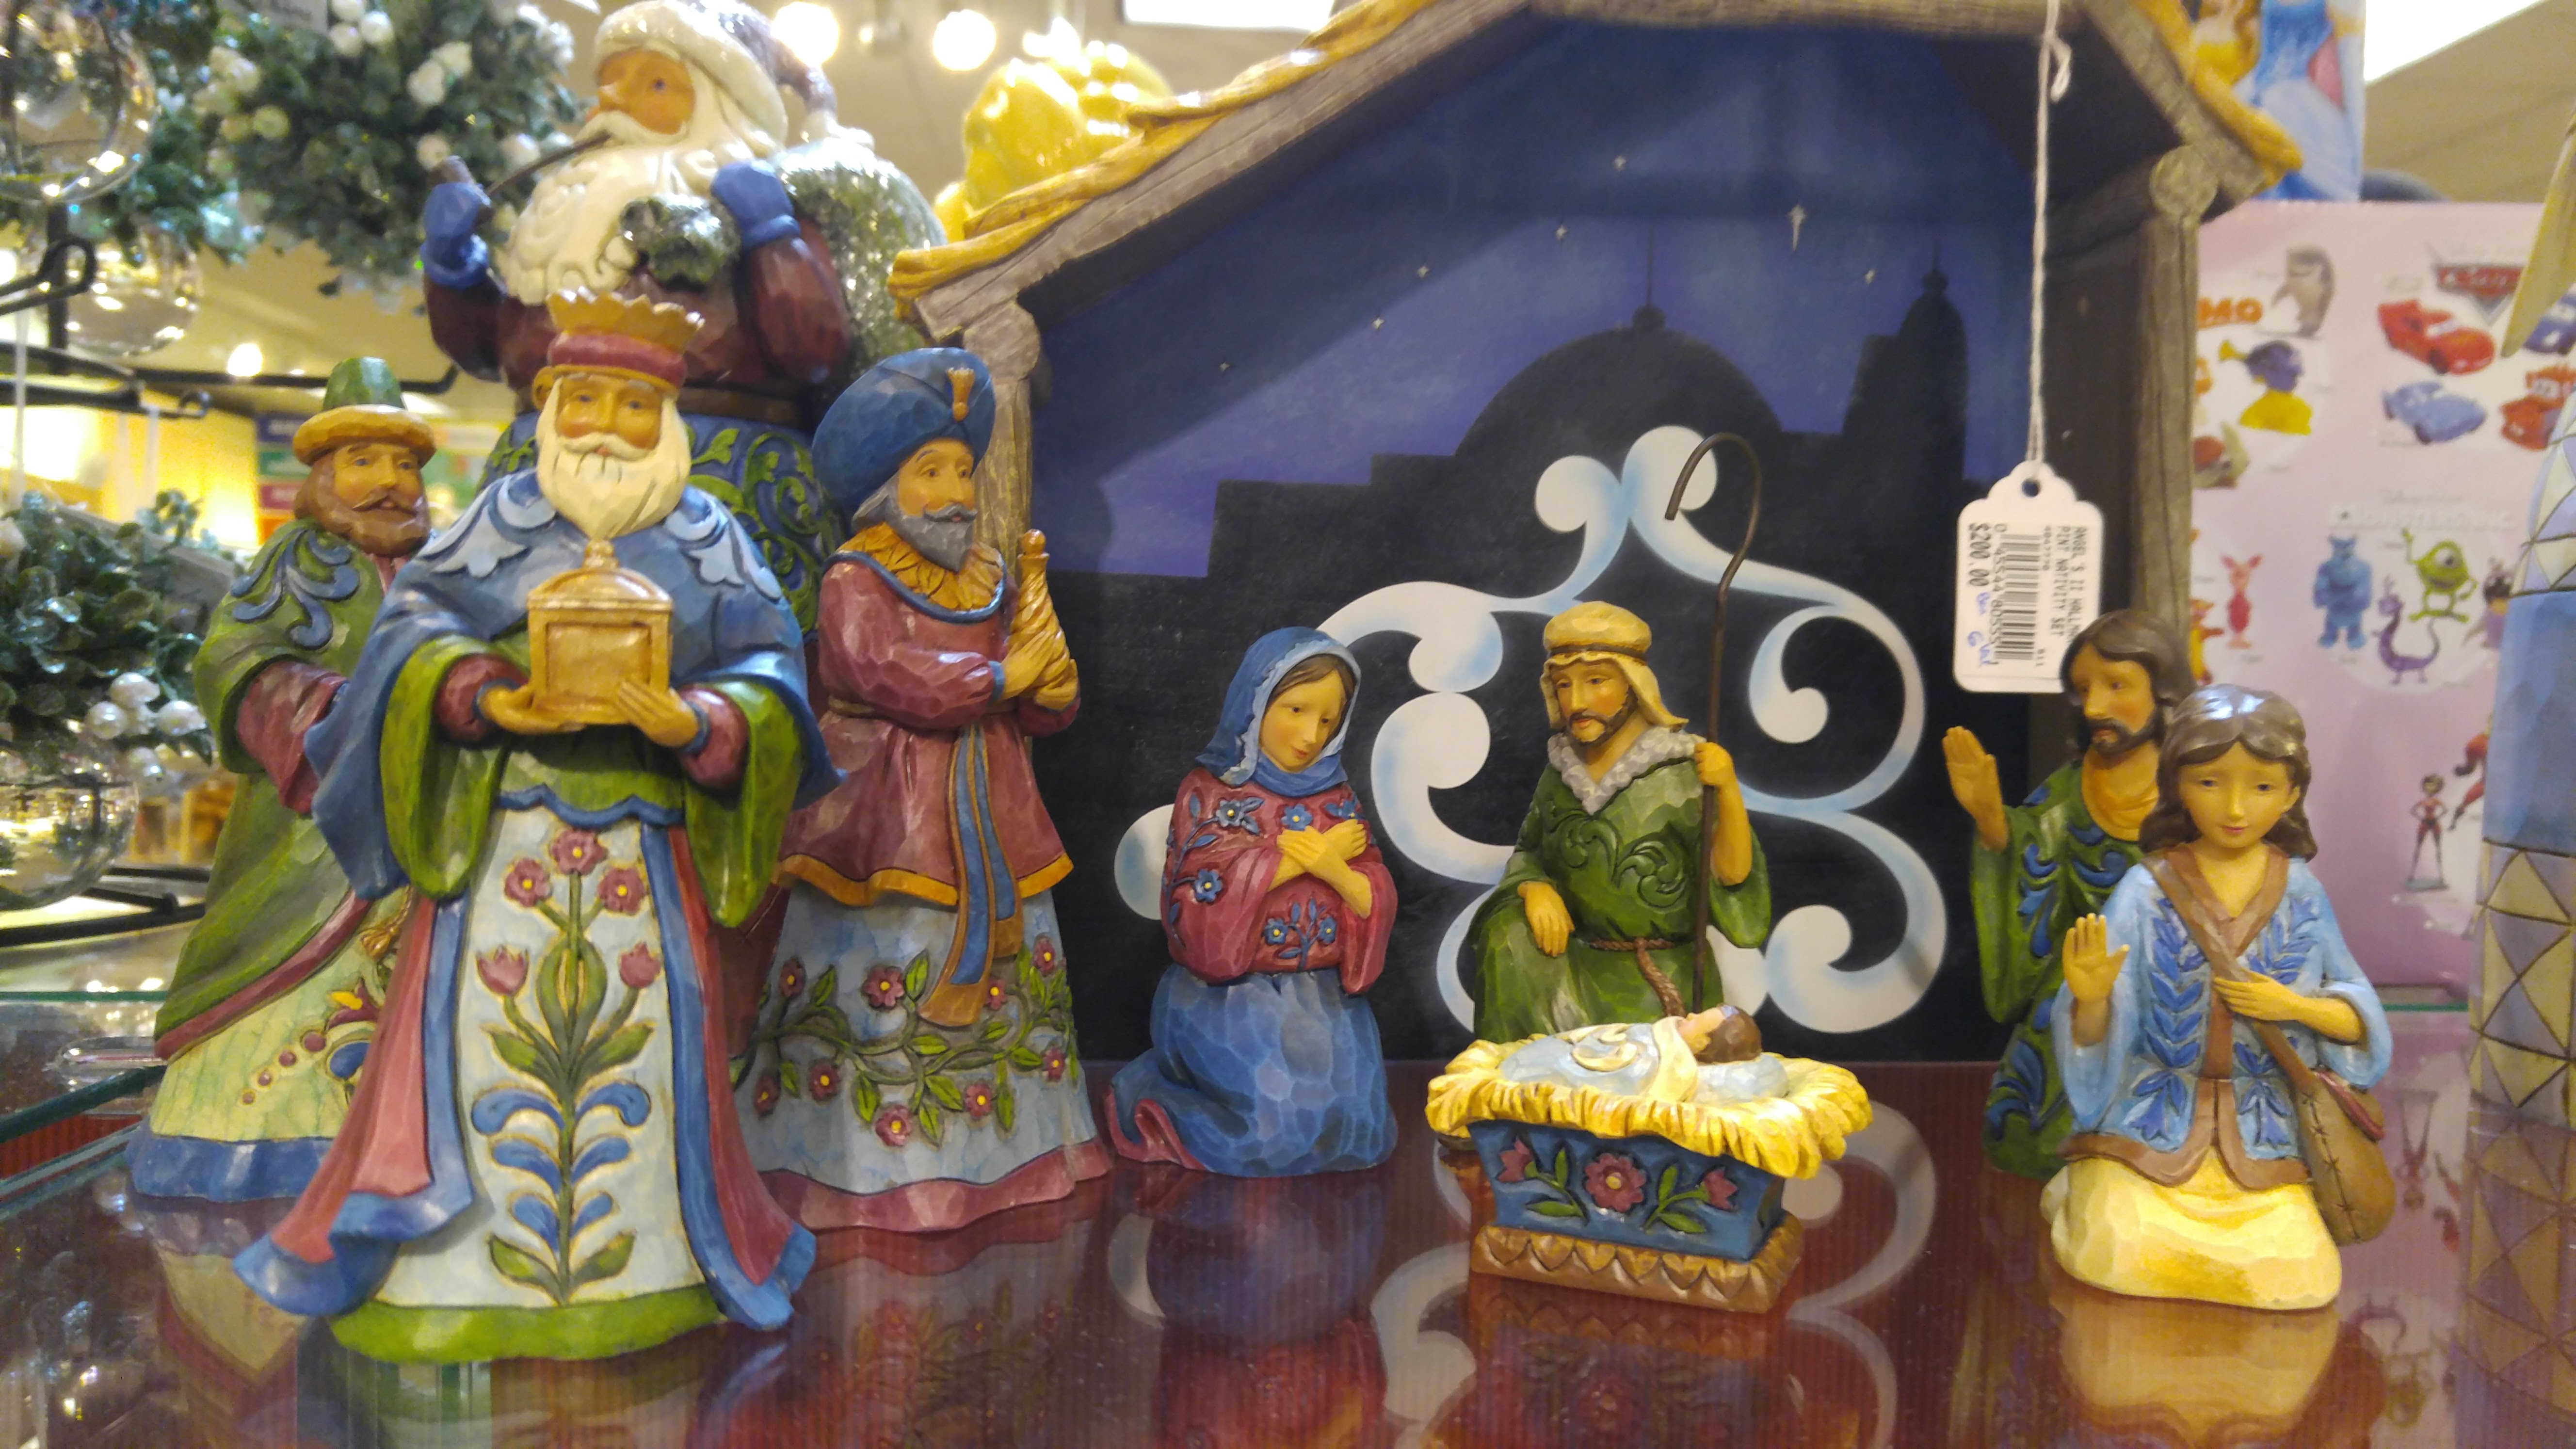 United States Style, Nativity for Sale with Christ Child a Permanent Part